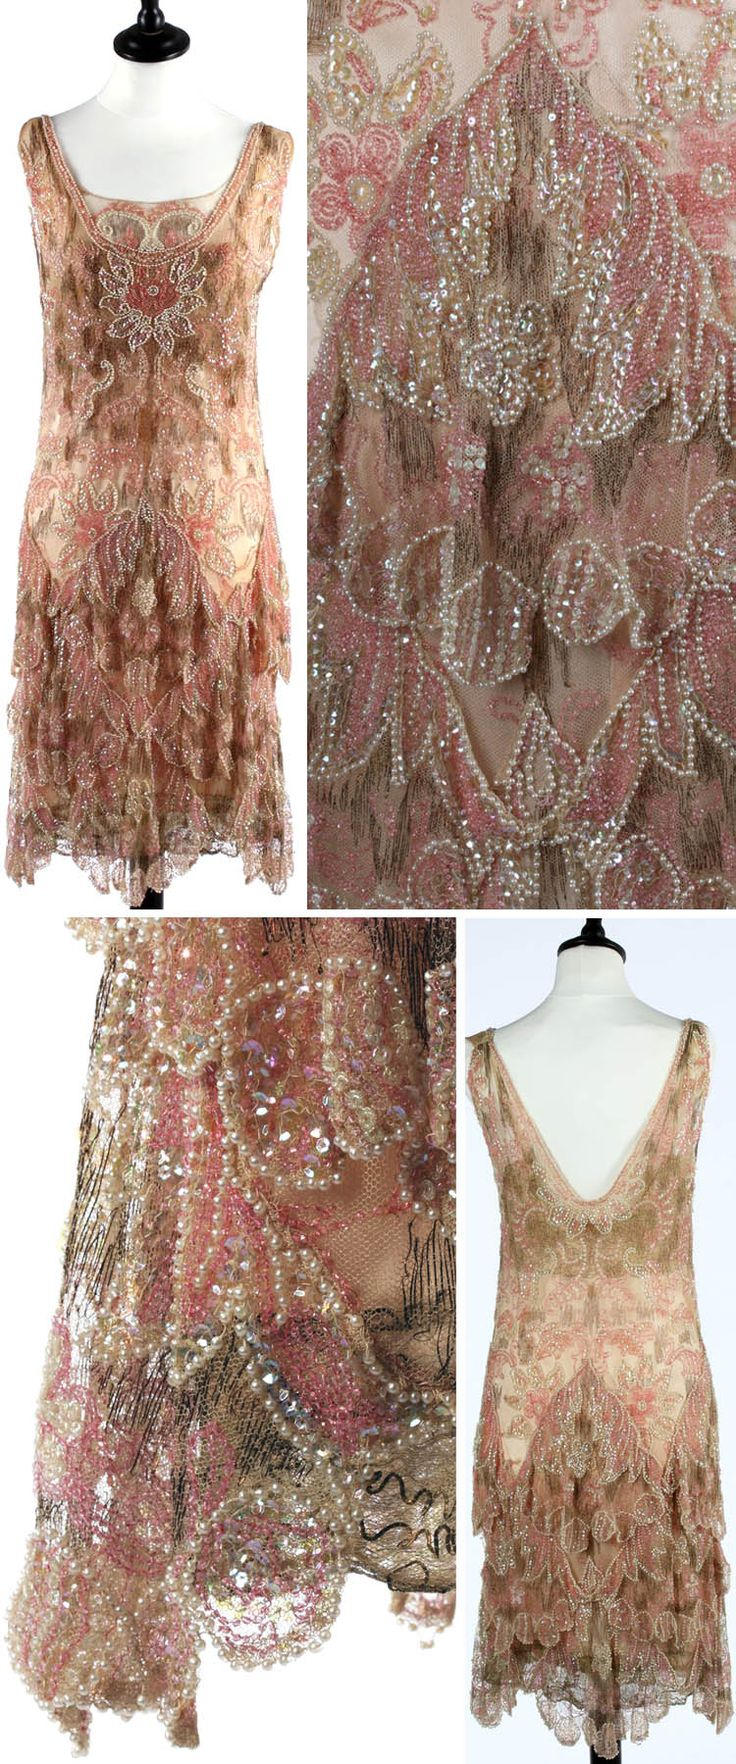 Evening dress, Callot Soeurs, 1927. Pink and gold beaded and embroidered flapper dress. Oyster pink satin slip. Pale rose tulle worked with large flowerheads in opalescent sequins, pink seed beads, and pearls. Ground threaded with gilt strip. Skirt falls in petal-like tiers. Via Kerry Taylor Auctions.